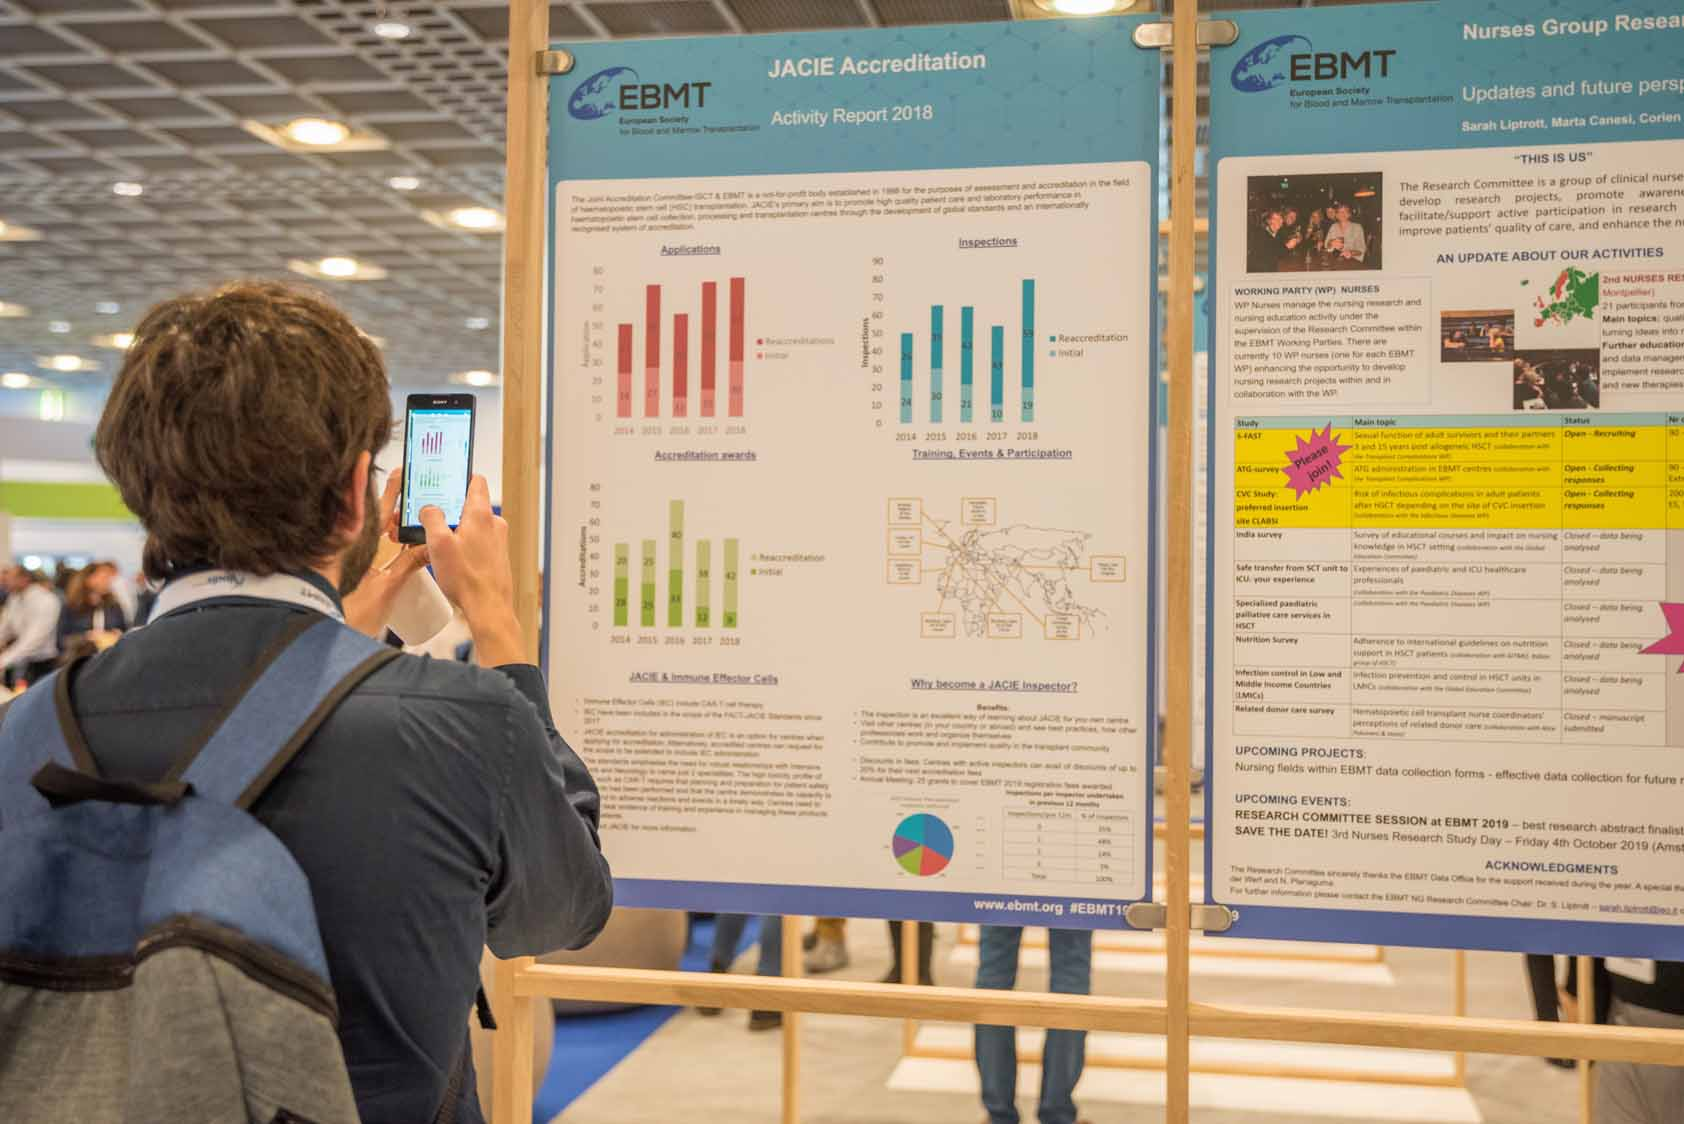 EBMT 2019 Posters